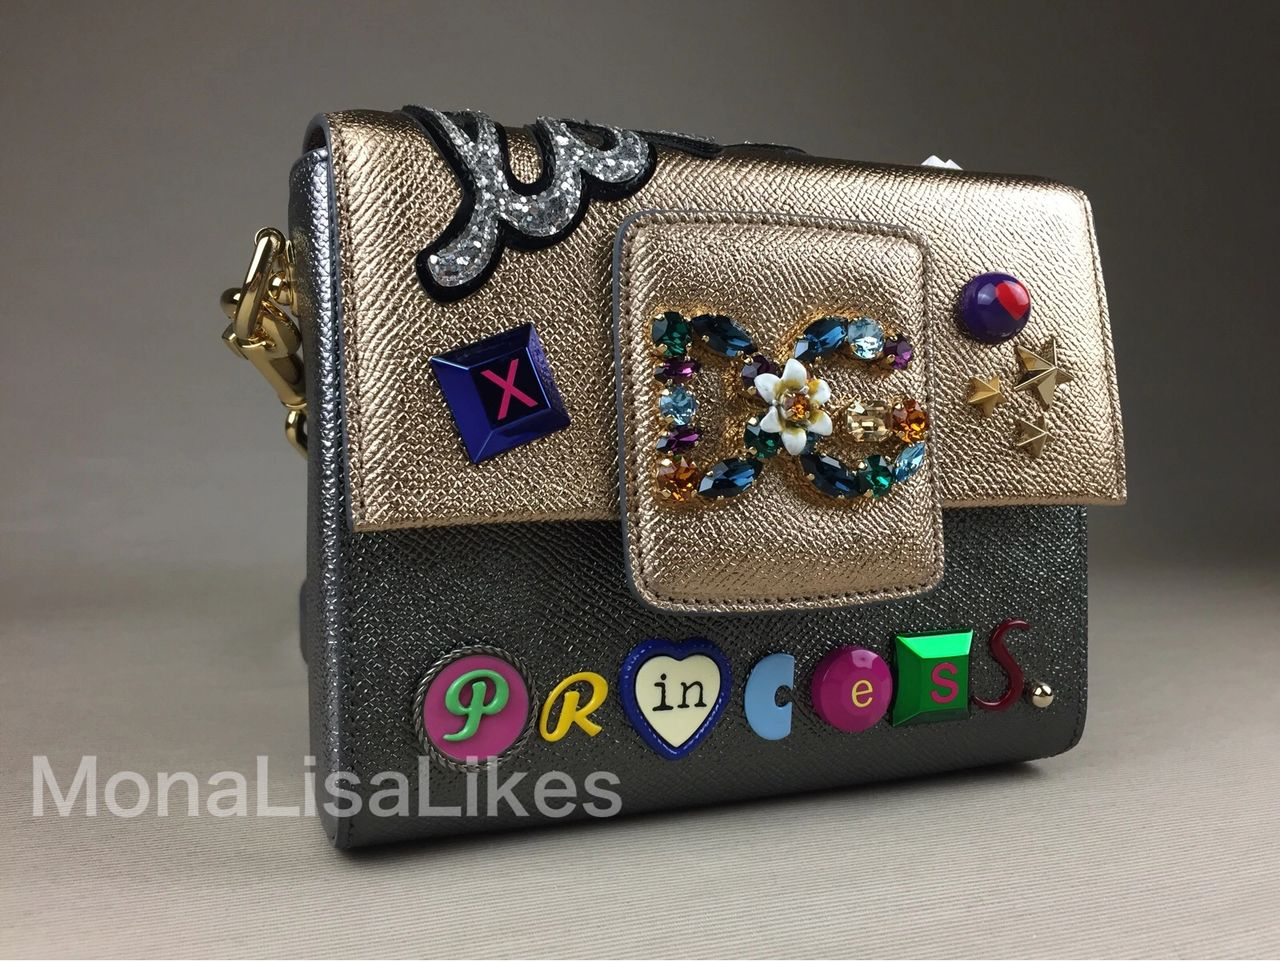 Embellished DG MILLENIALS bag in gold metallic leather